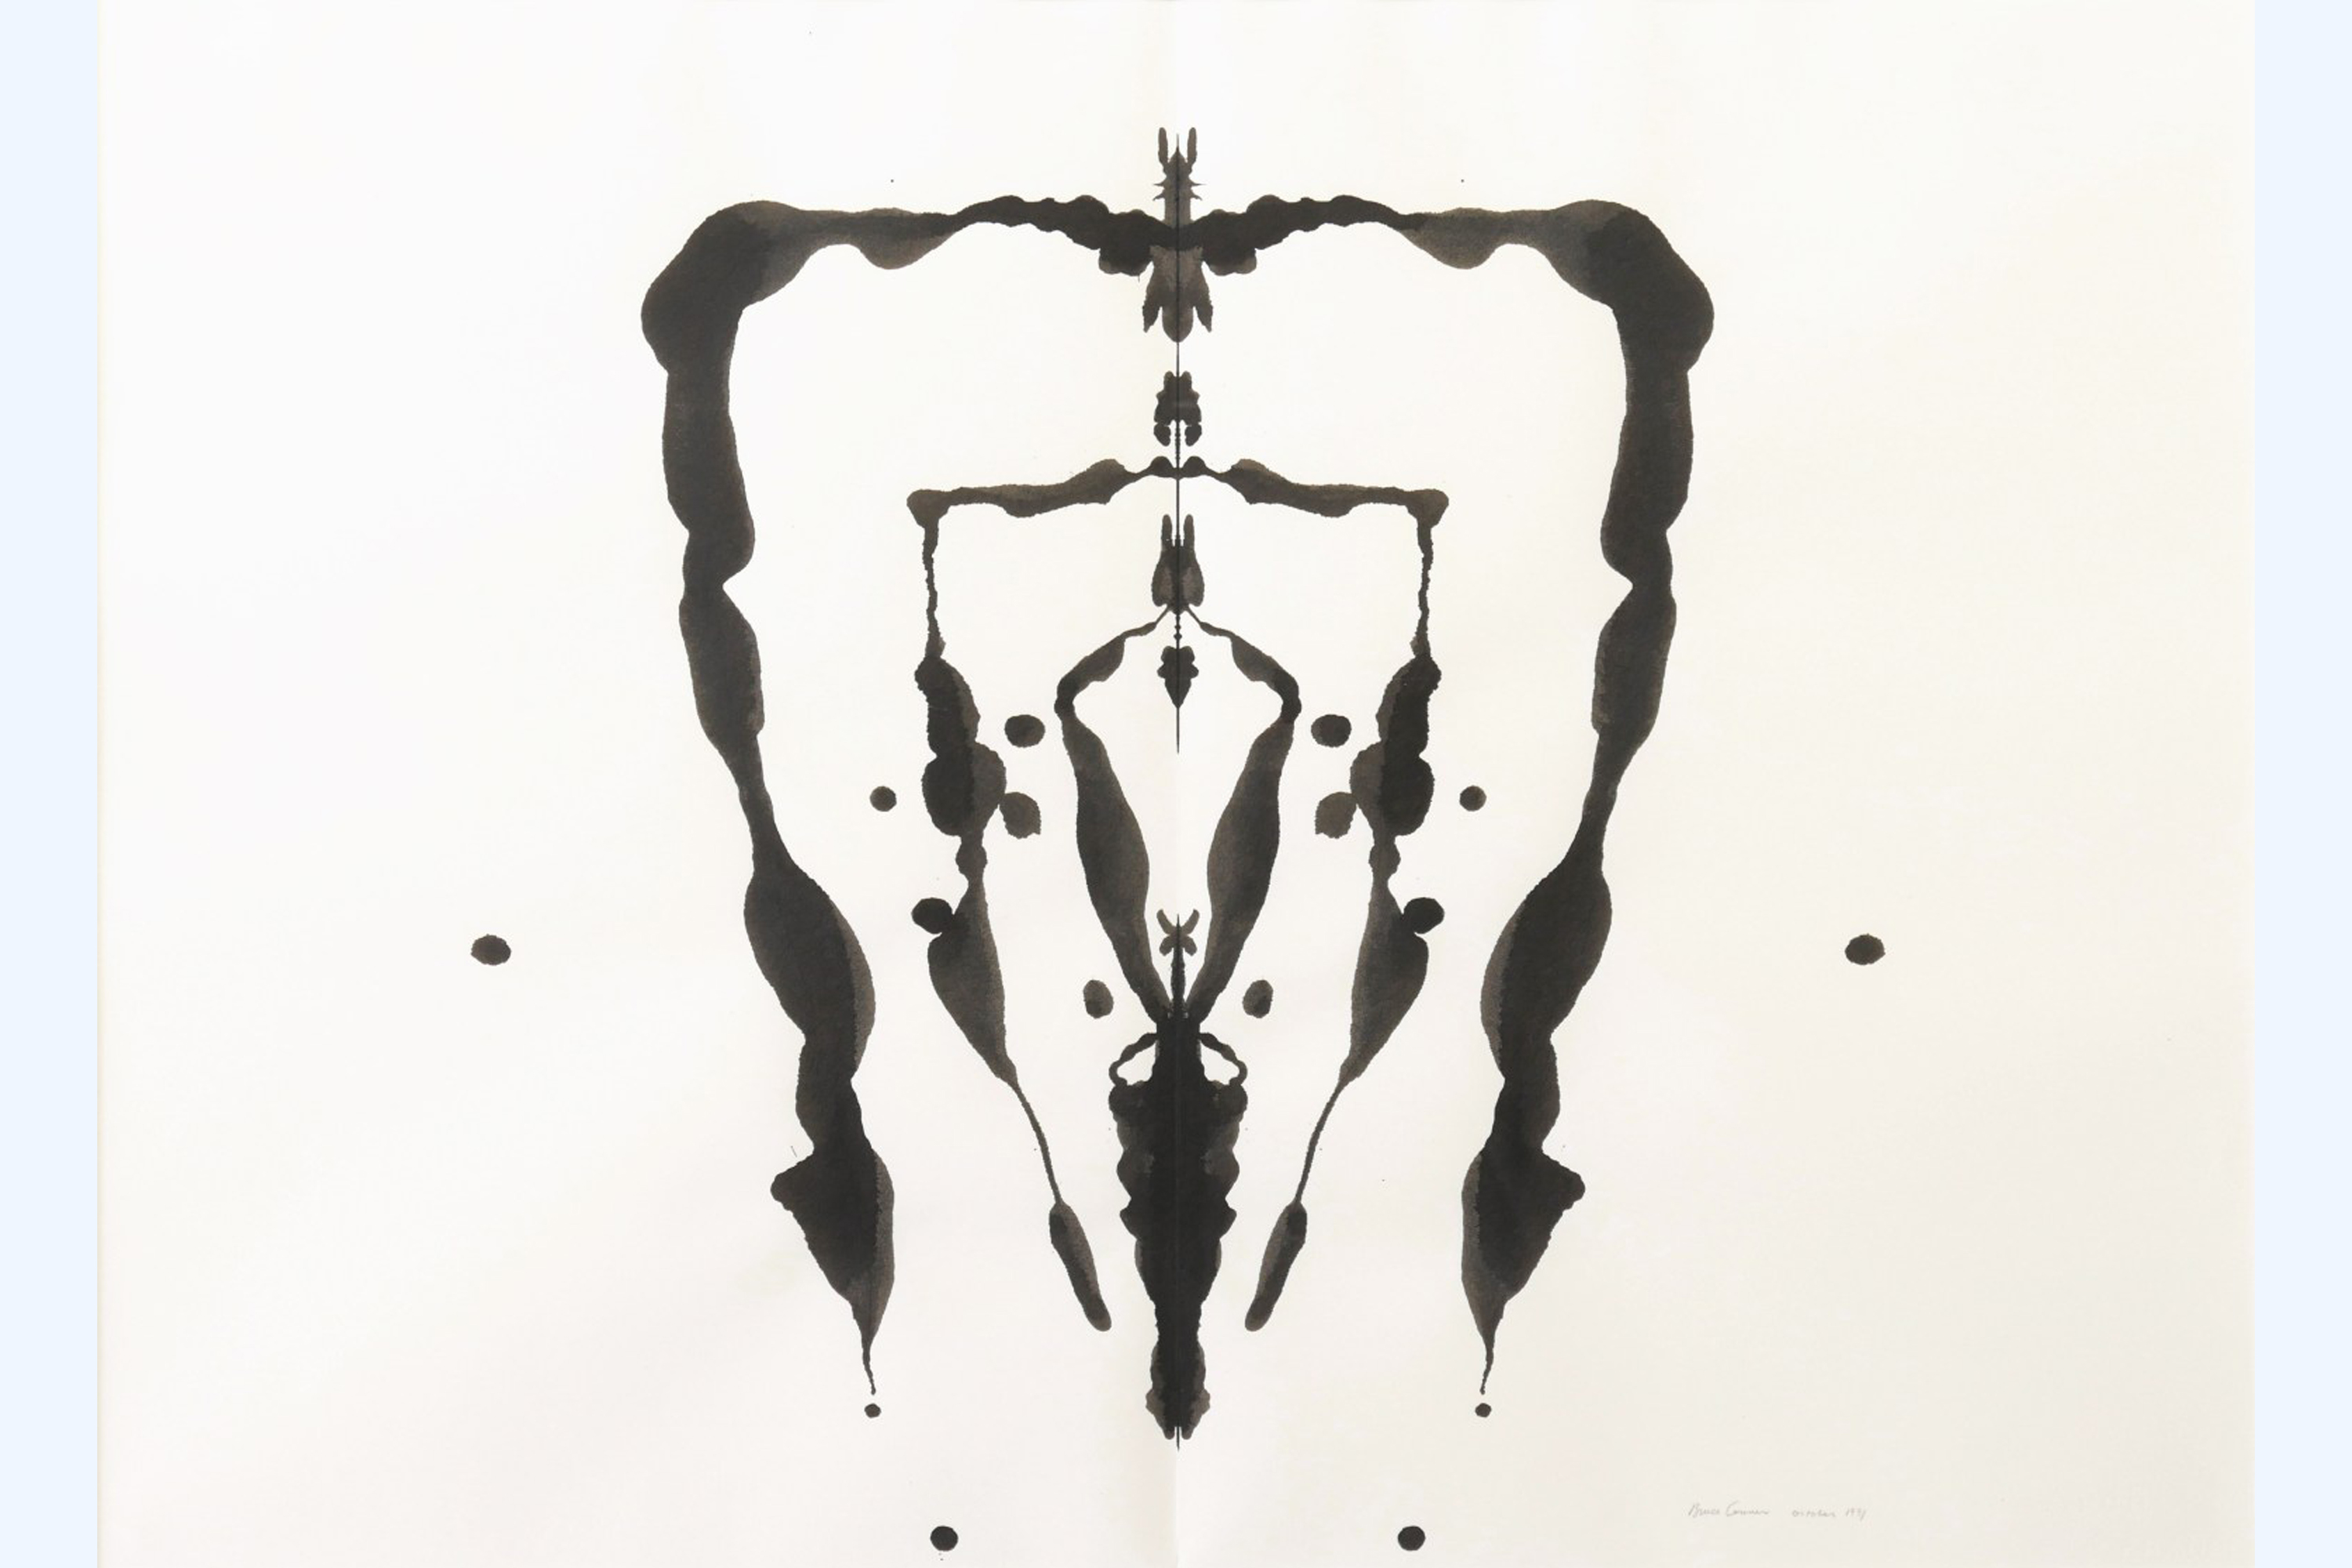 Black ink on white paper in an abstract design. The image is symmetrical, each side a mirror image of the other, and appears to be made by placing ink on paper and then folding the paper to create the design.